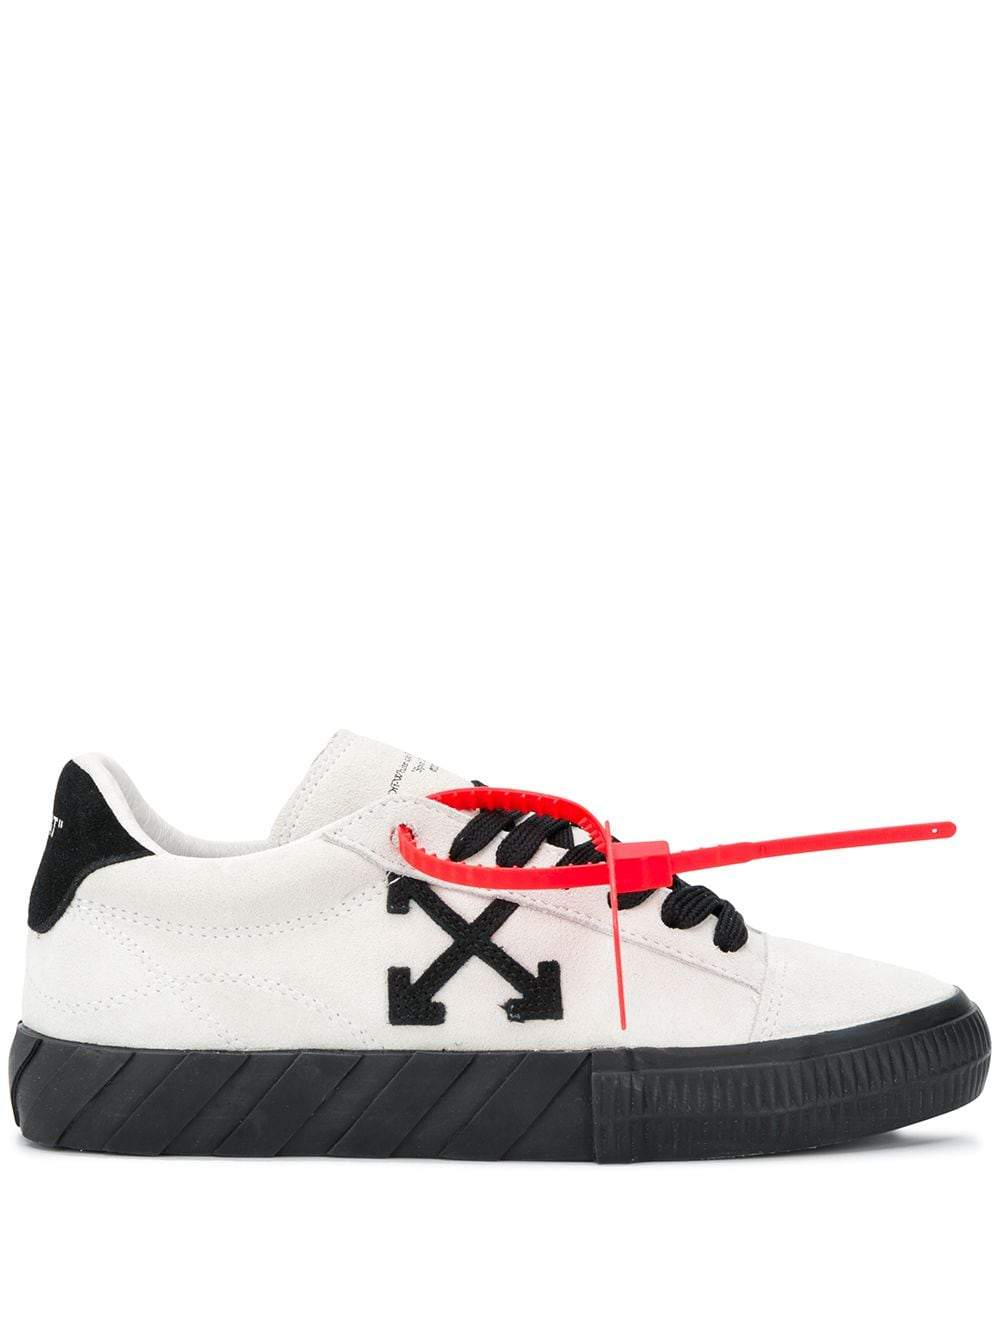 OFF-WHITE Women New Arrow Low Vulcanized Sneakers White